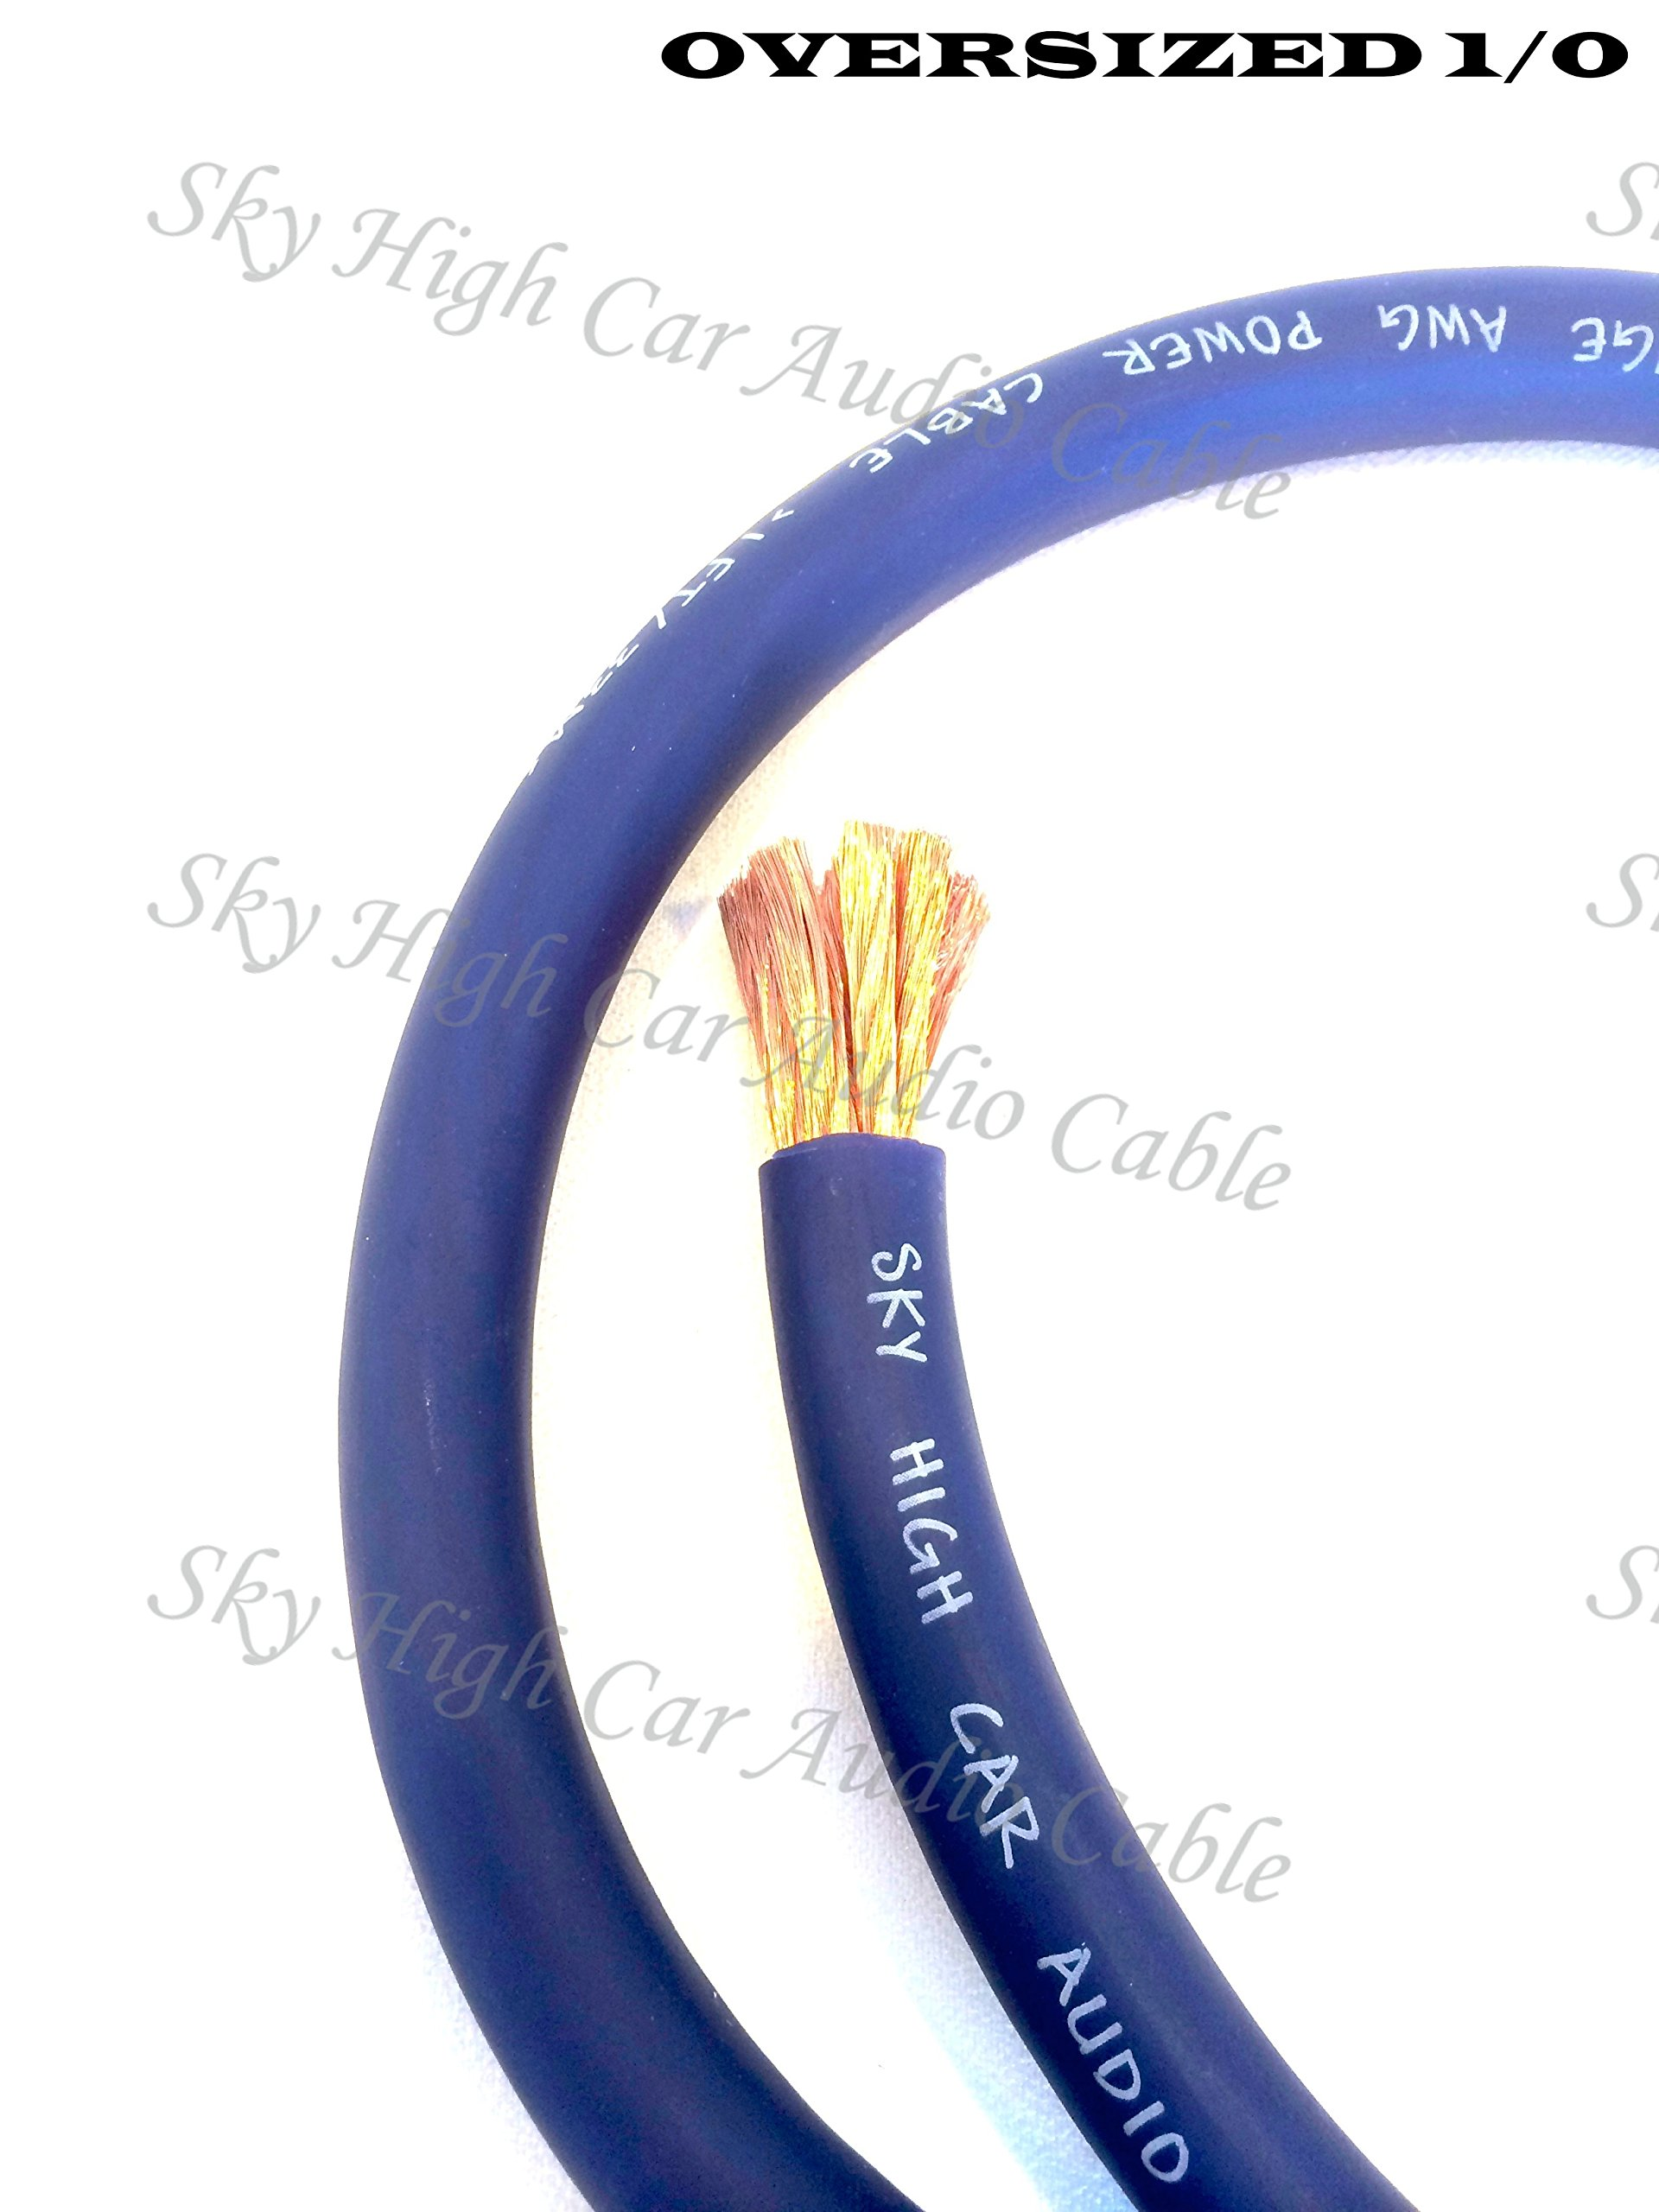 5 ft CCA 1/0 Gauge Oversized BLUE Power Ground Wire Sky High Car Audio